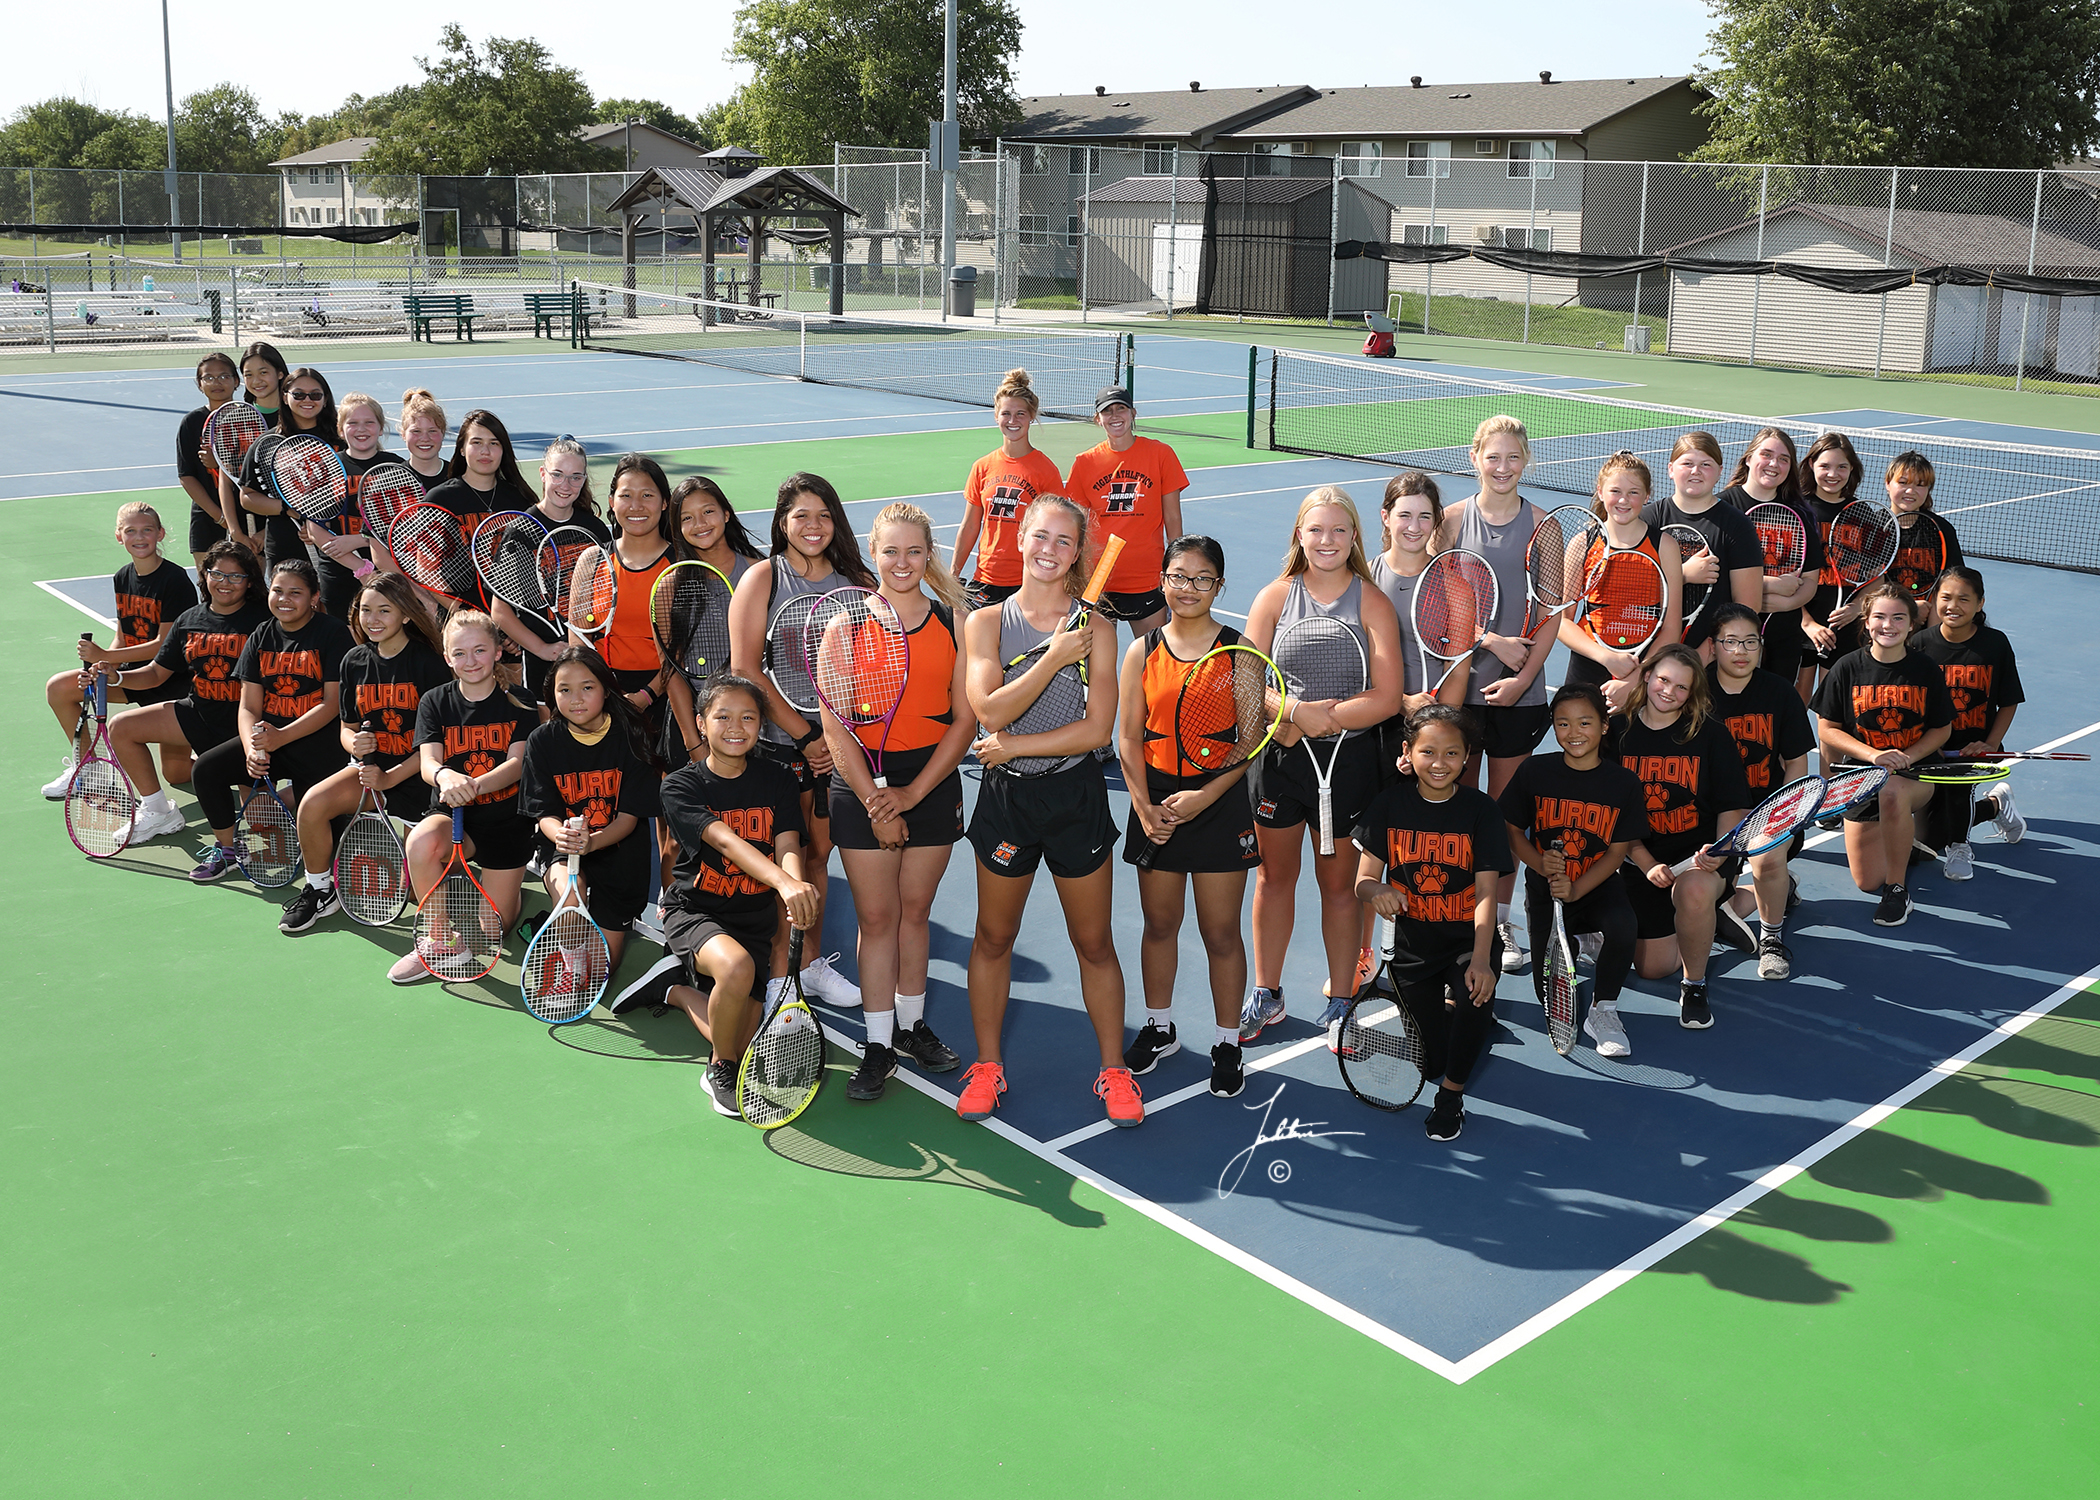 Huron High School Girls Tennis.jpg